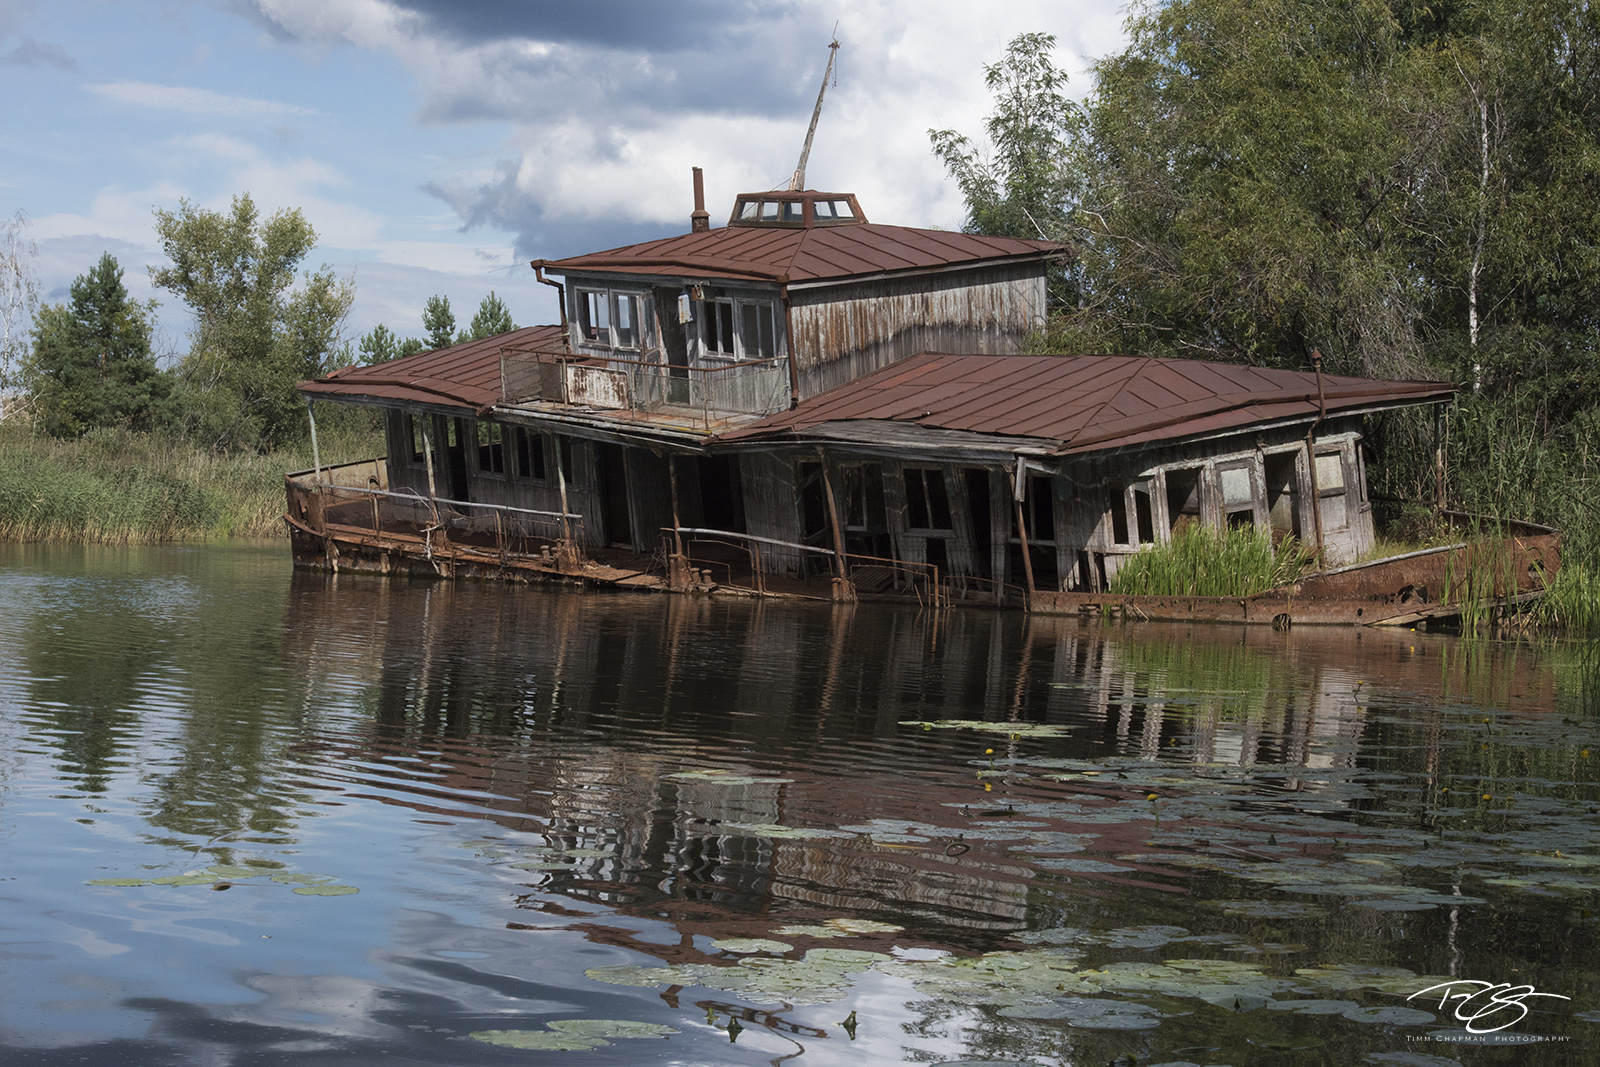 chernobyl, chornobyl, pripyat, exclusion zone, abandoned, forgotten, wasteland, radioactive, decay, peeling paint, pripyat river, boathouse, ship, boat, passenger ship, ferry, sinking ship, reflection, photo